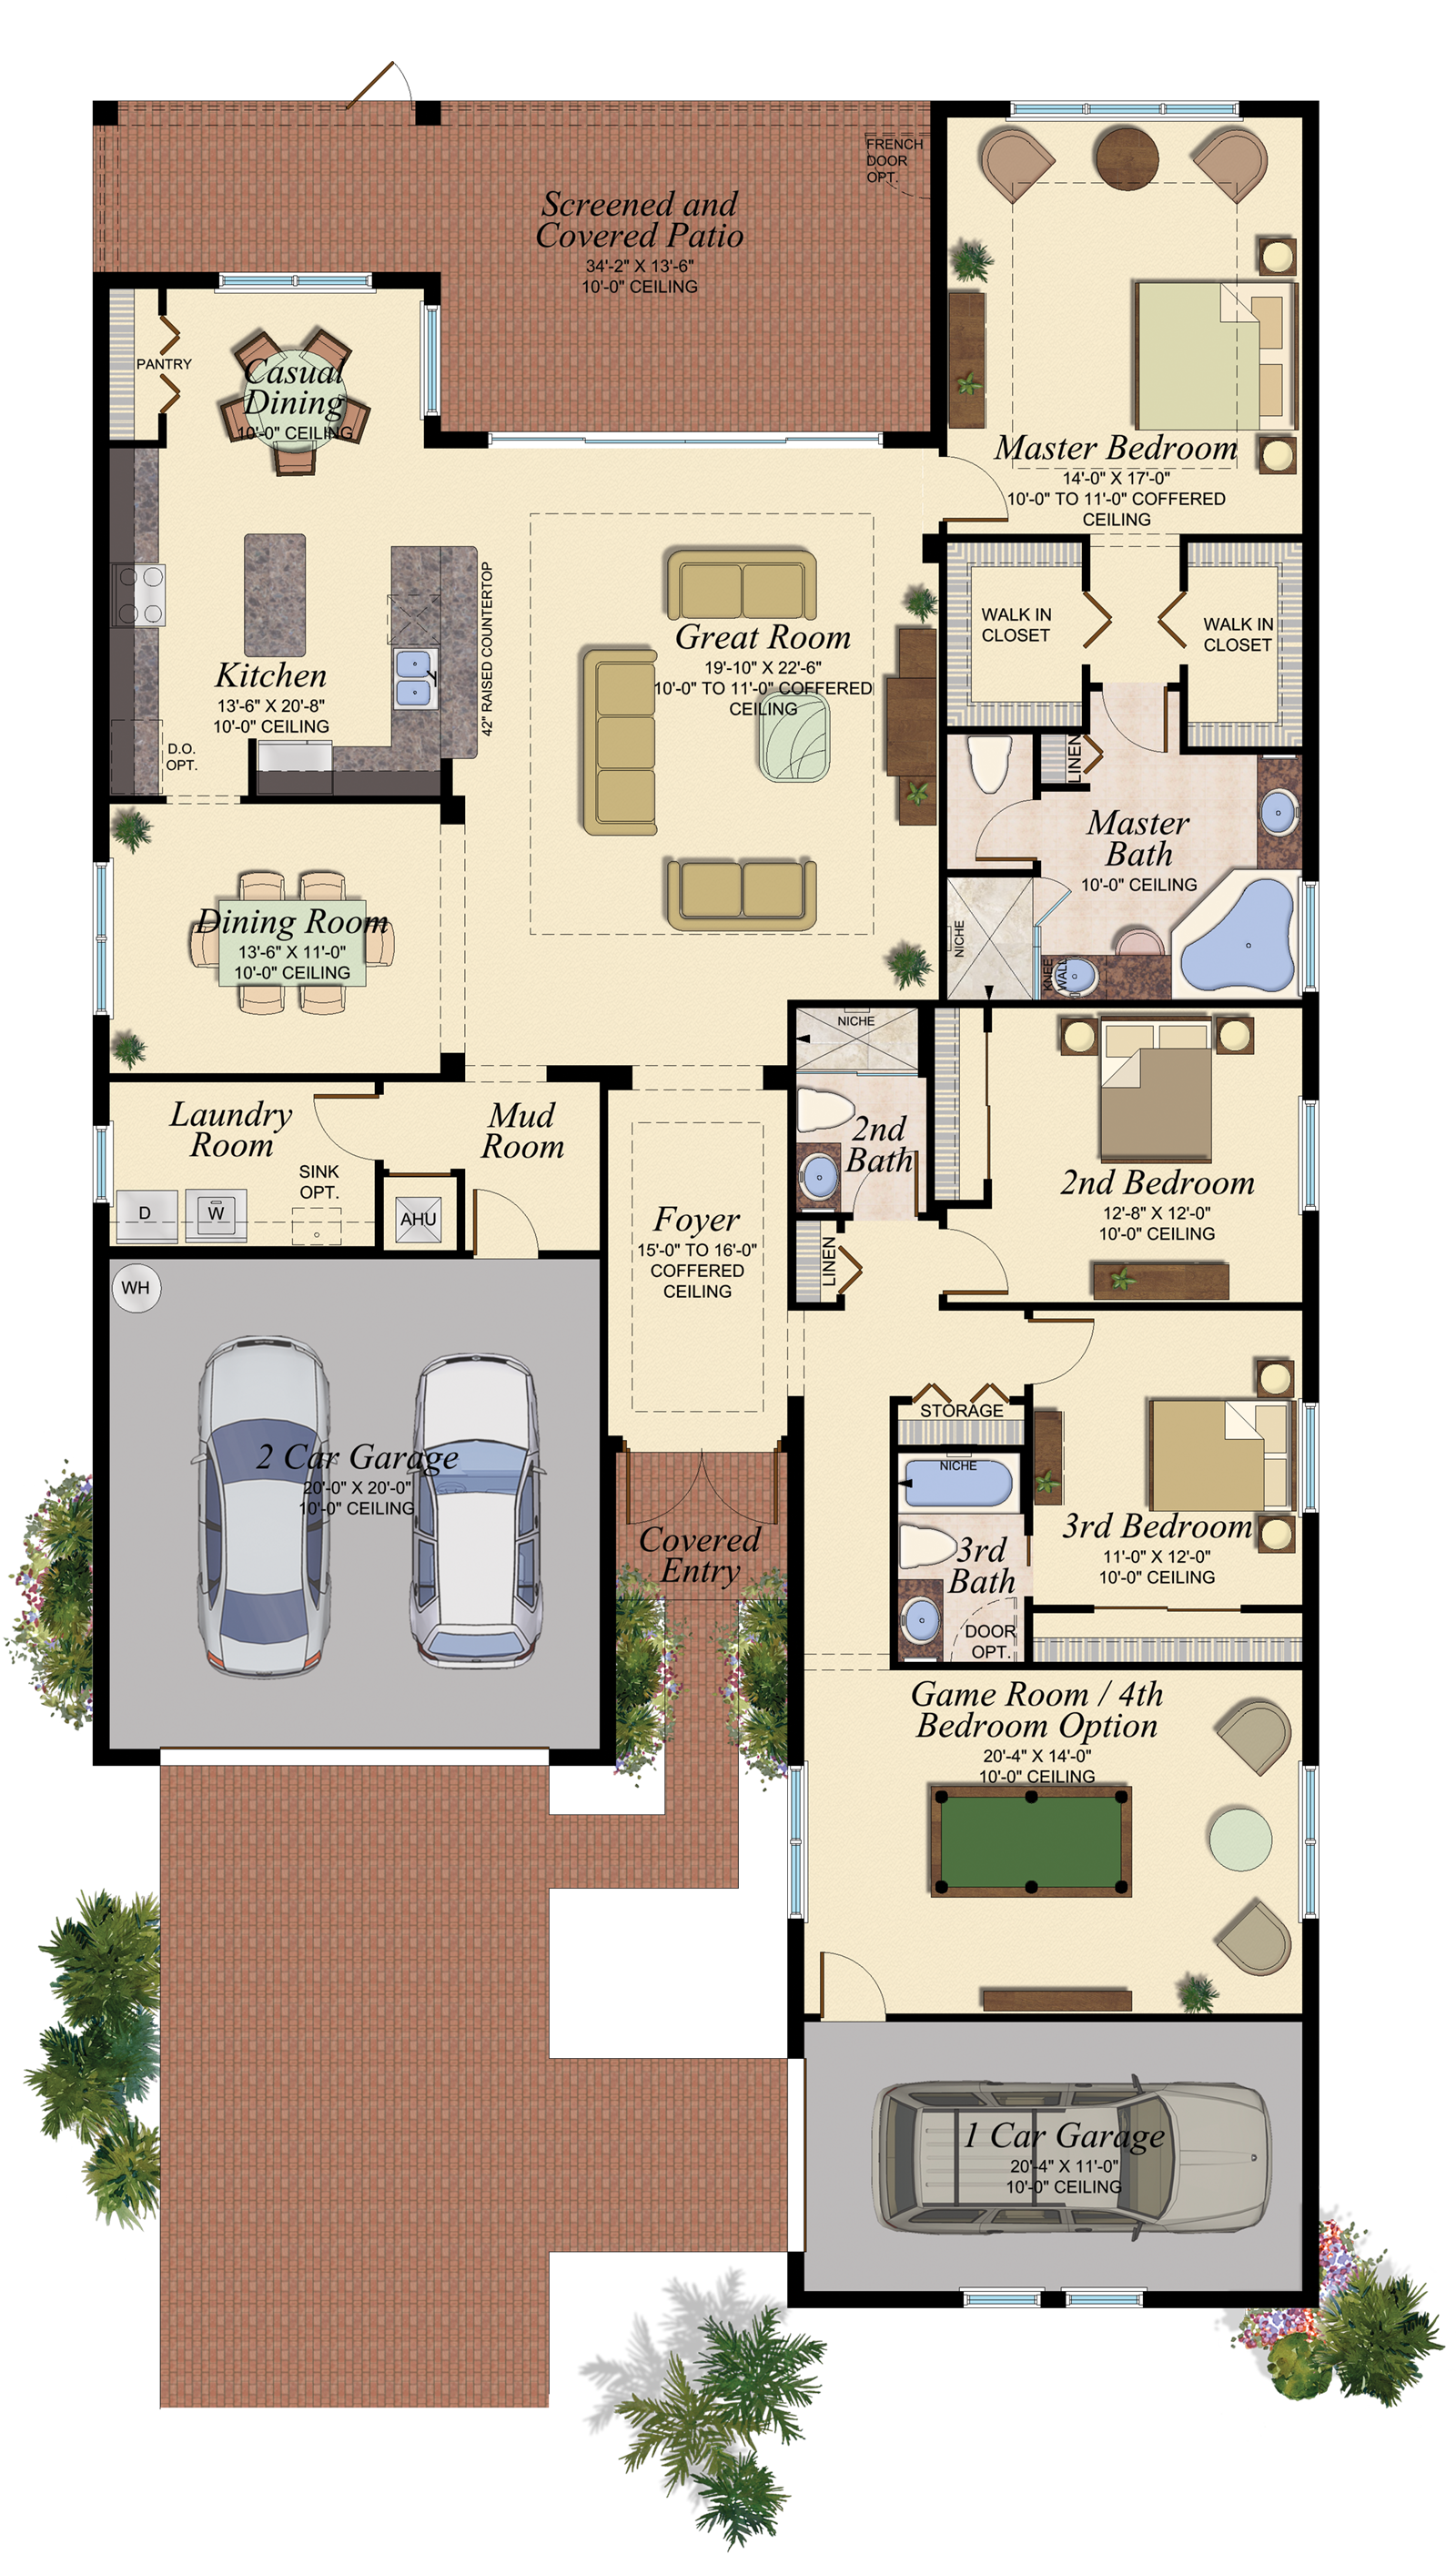 Gl Homes House Layout Plans New House Plans Home Design Floor Plans